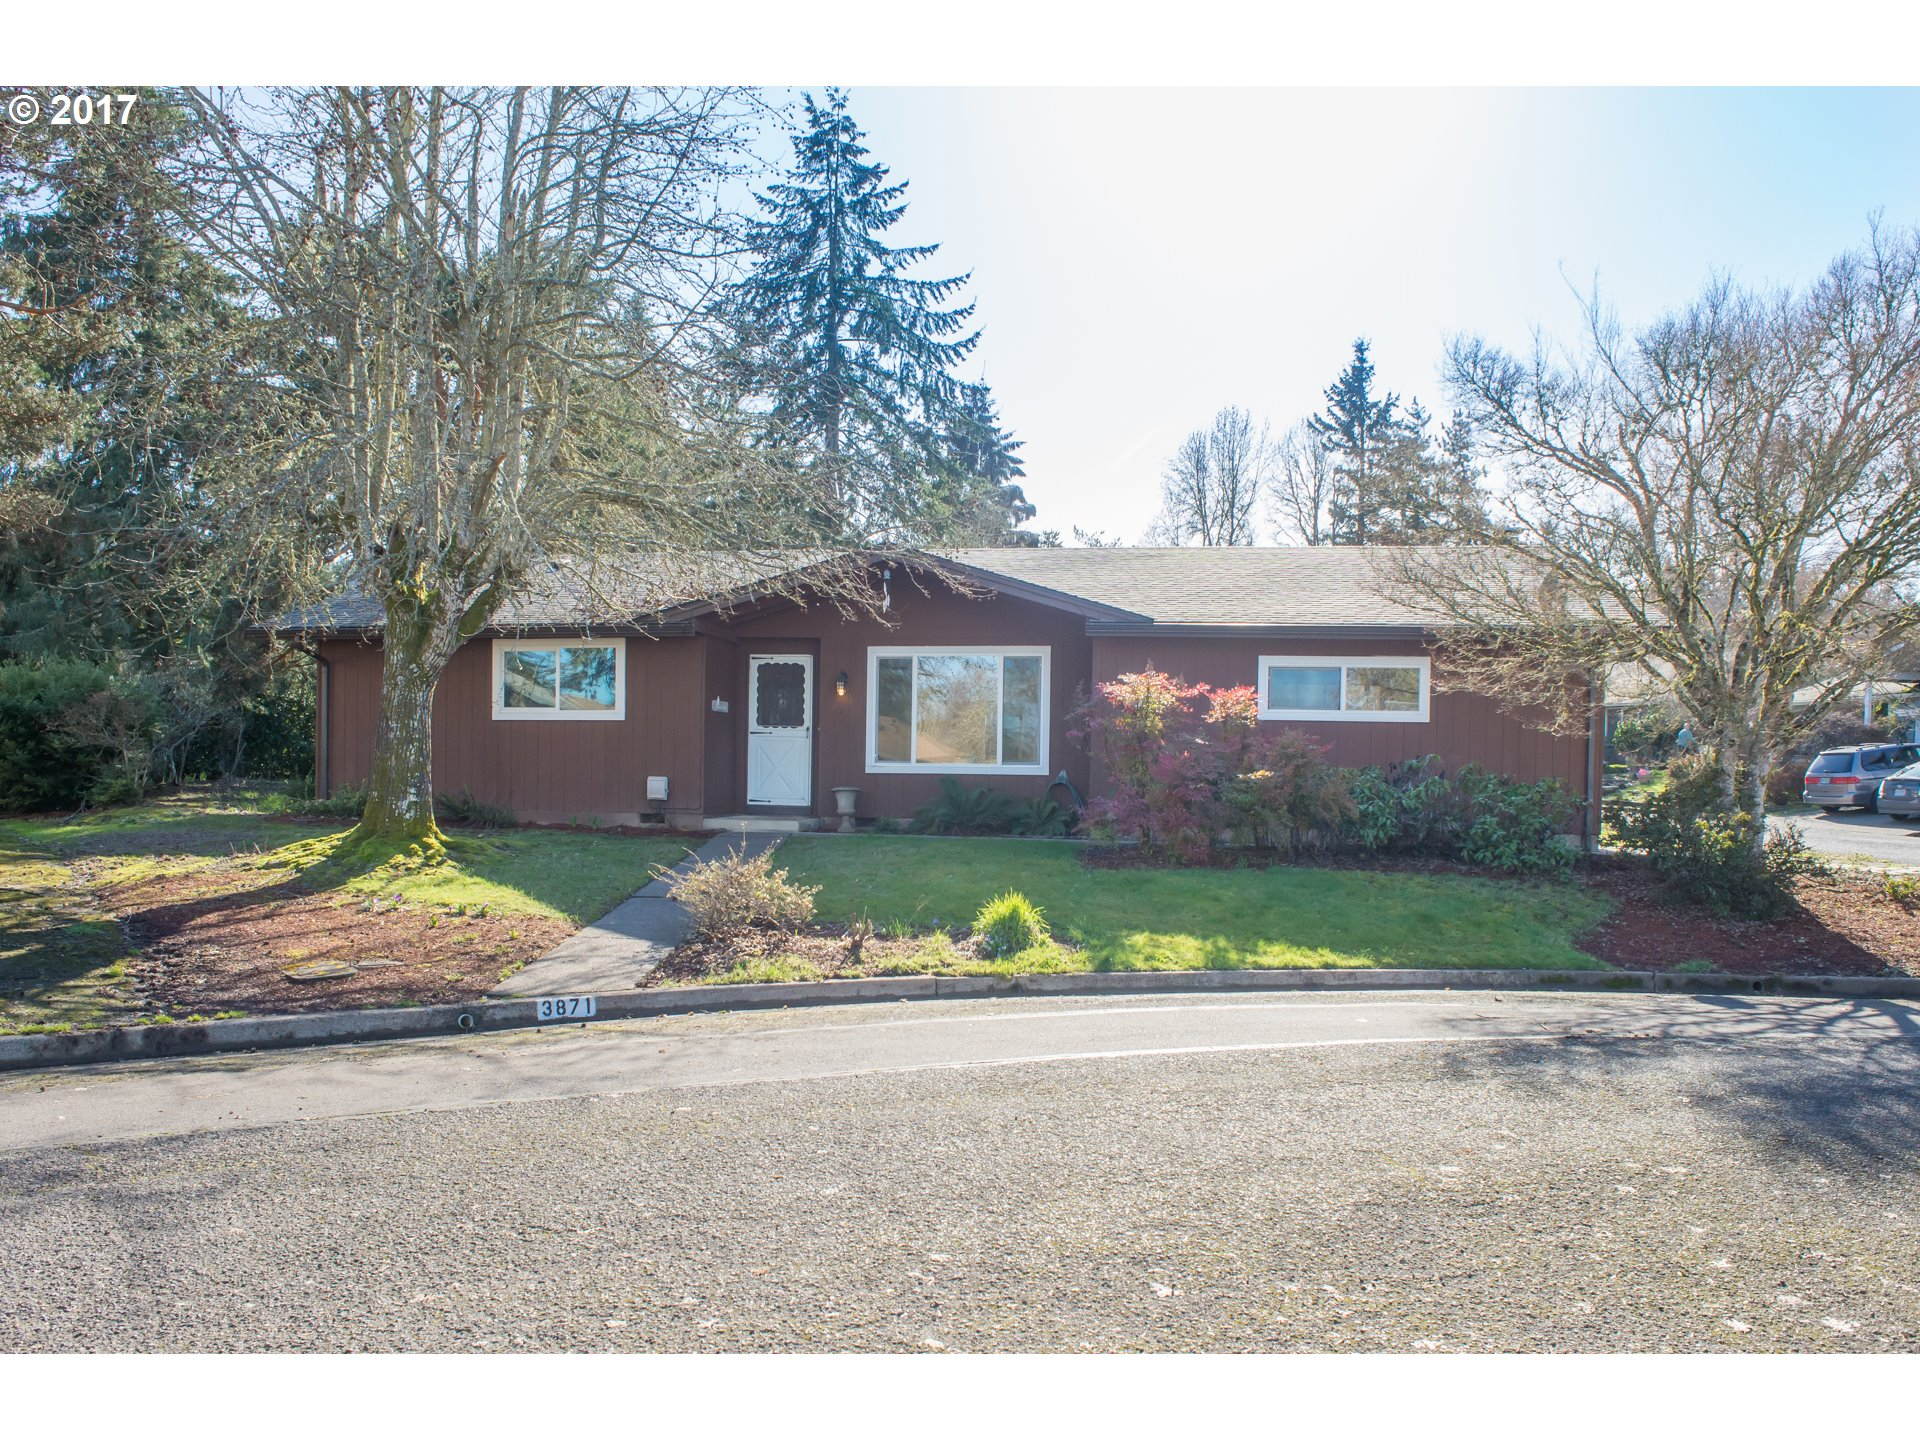 3871 KEVINGTON AVE, Eugene, OR 97405